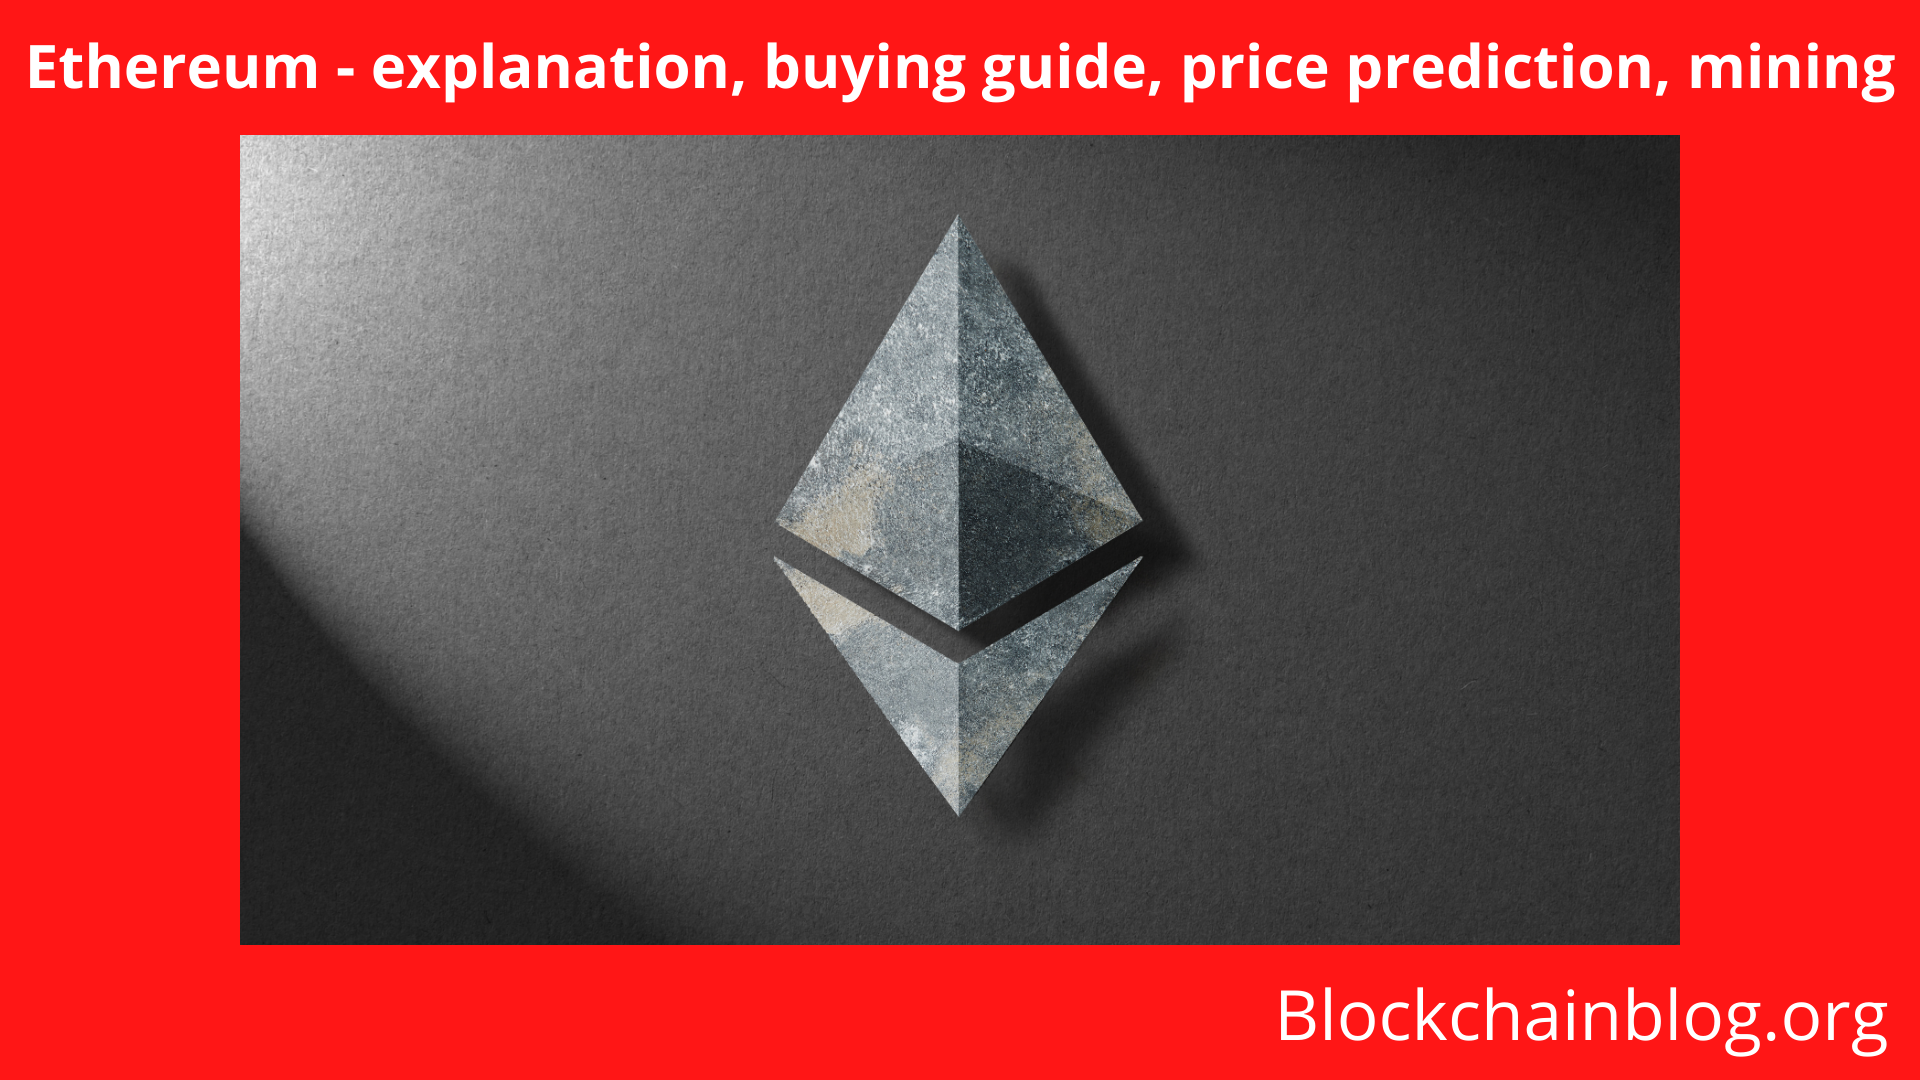 Ethereum - explanation, buying guide, price prediction, mining